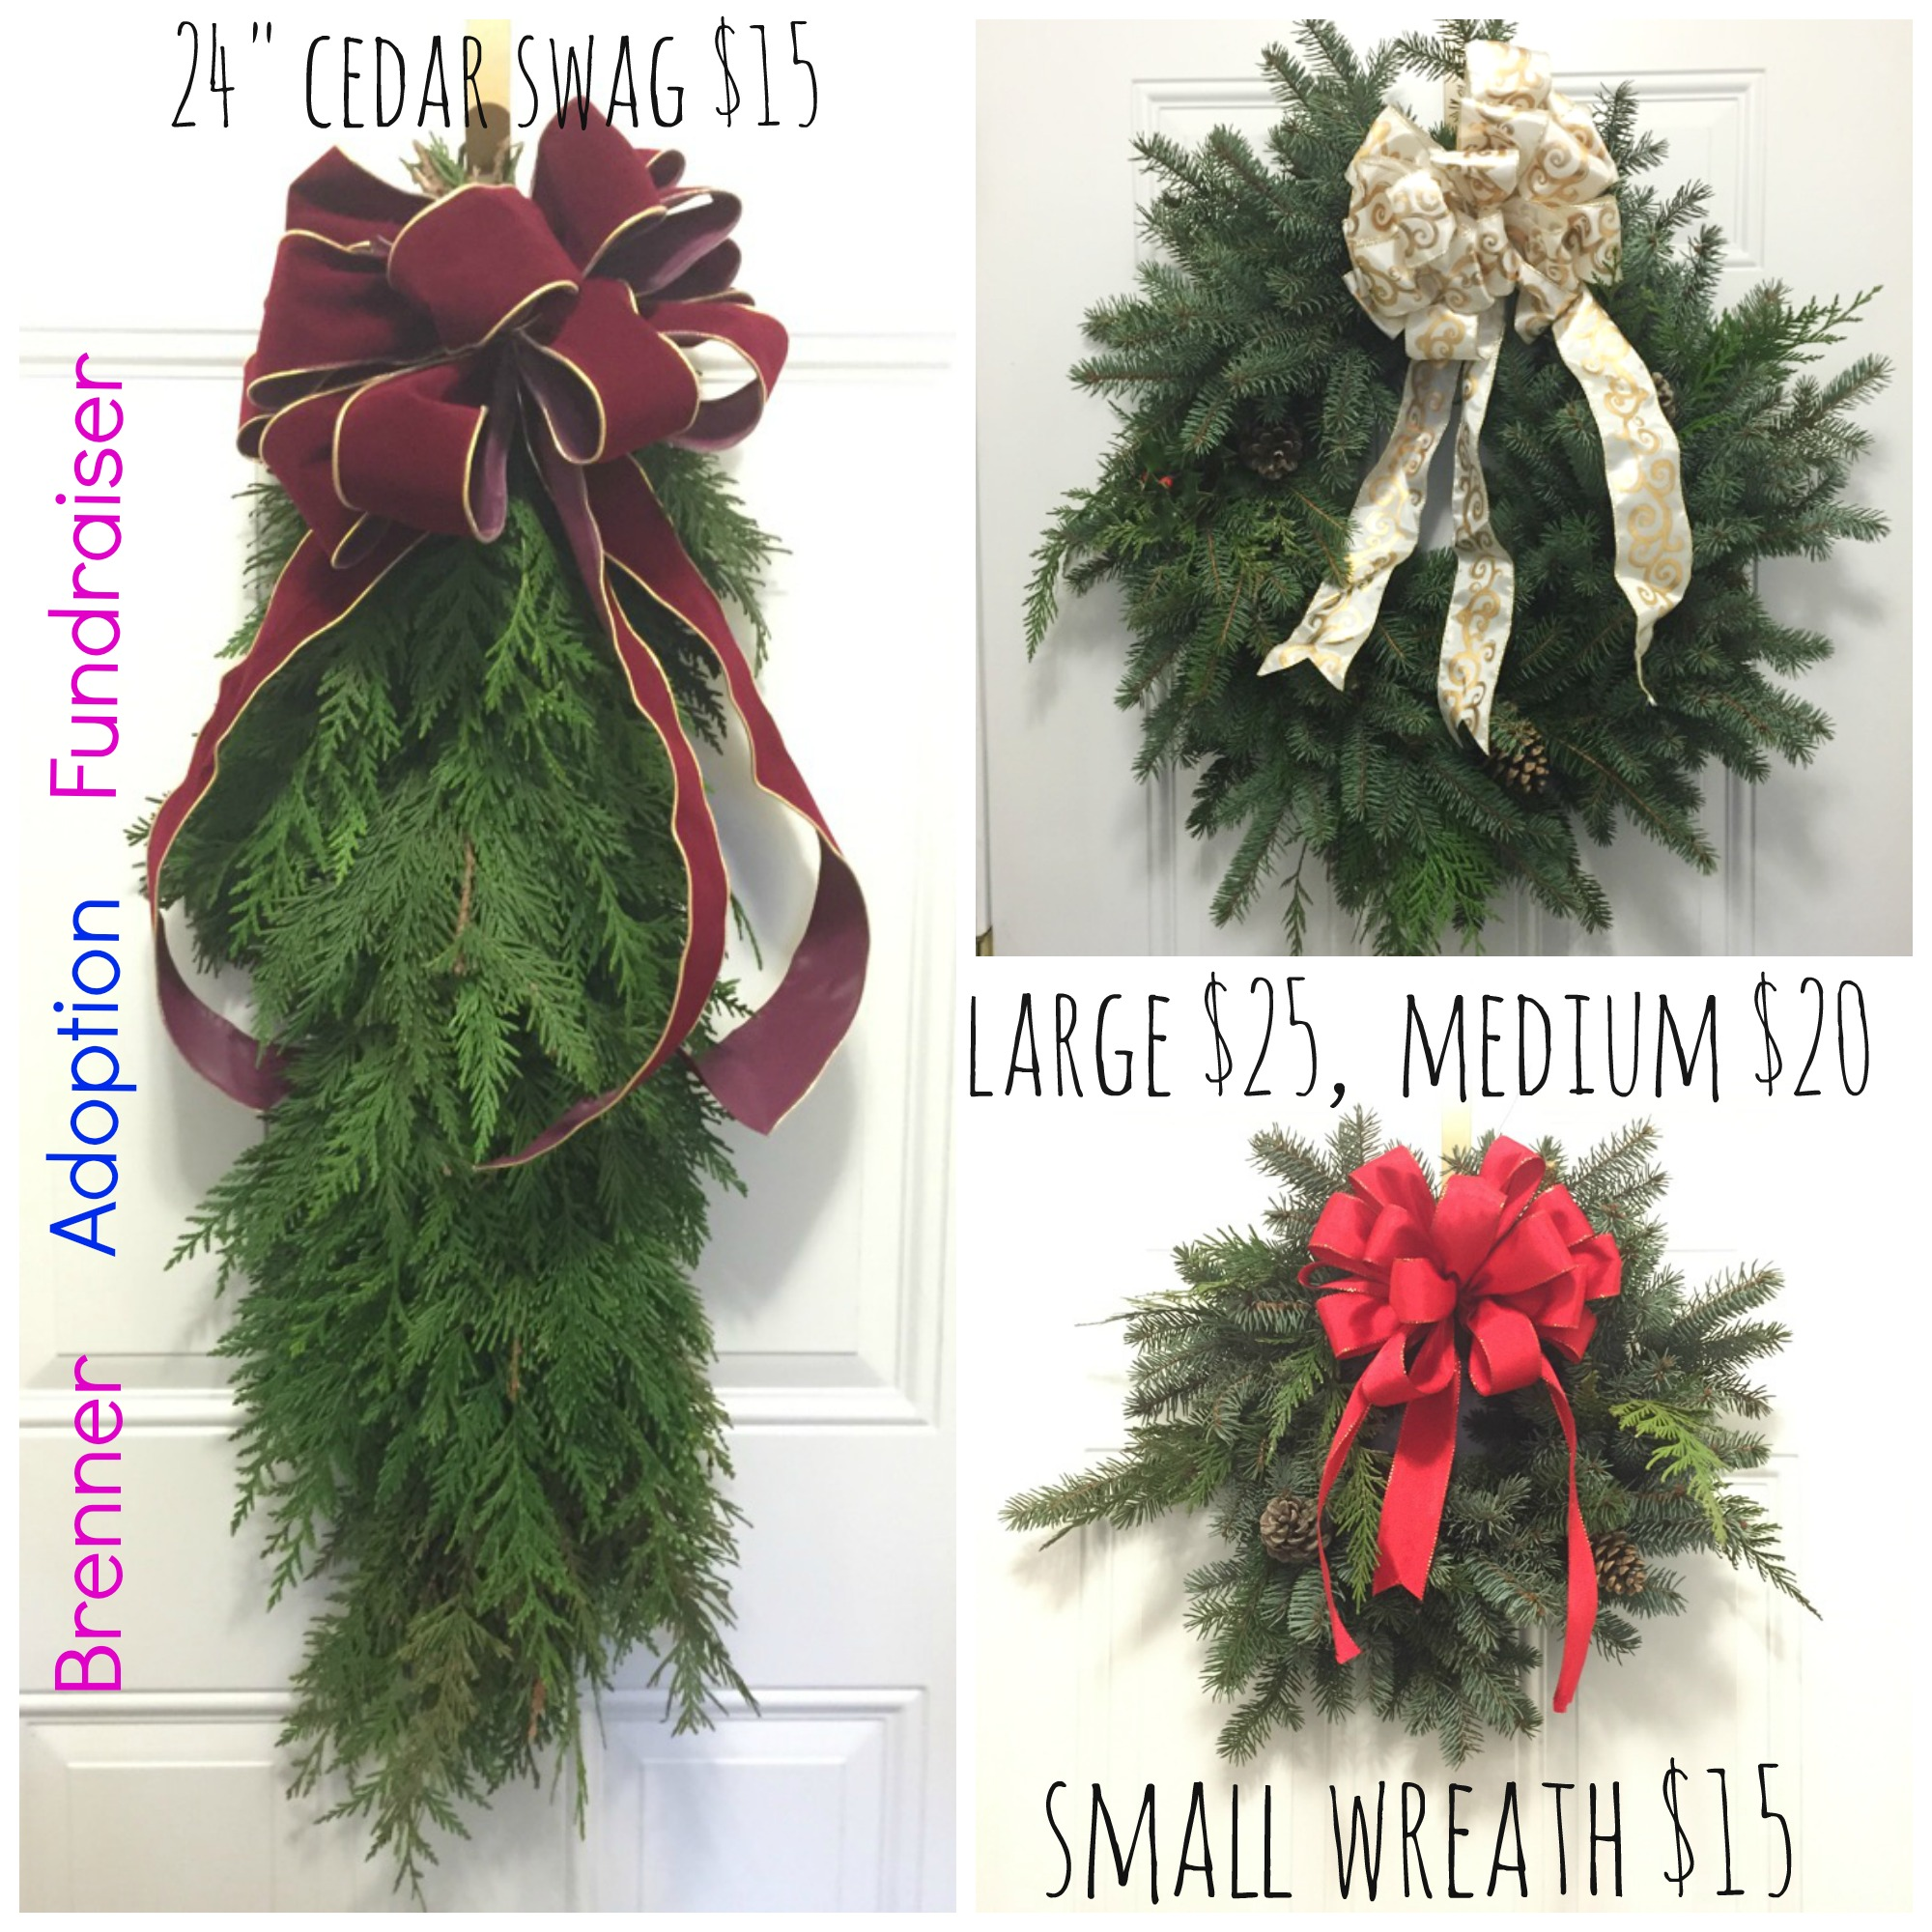 wreath adoption fundraiser image